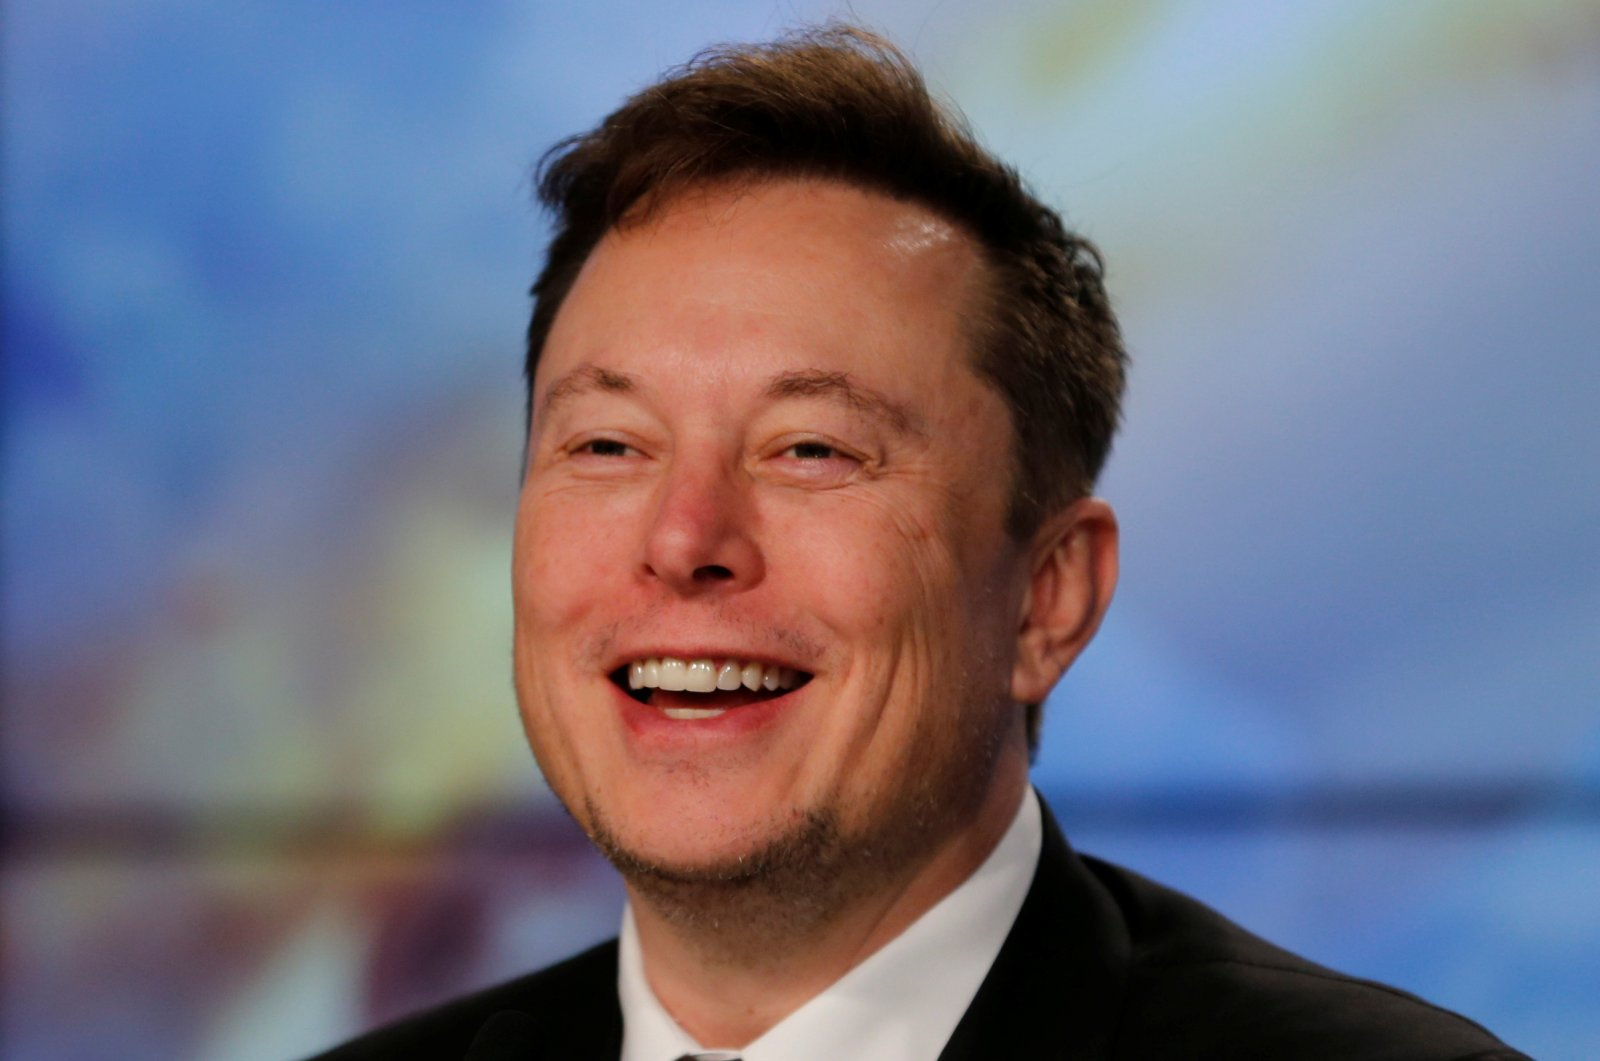 SpaceX founder and chief engineer, Elon Musk, speaks at a post-launch news conference to discuss the SpaceX Crew Dragon astronaut capsule in-flight abort test at the Kennedy Space Center in Cape Canaveral, Florida, U.S. Jan. 19, 2020. (Reuters Photo)